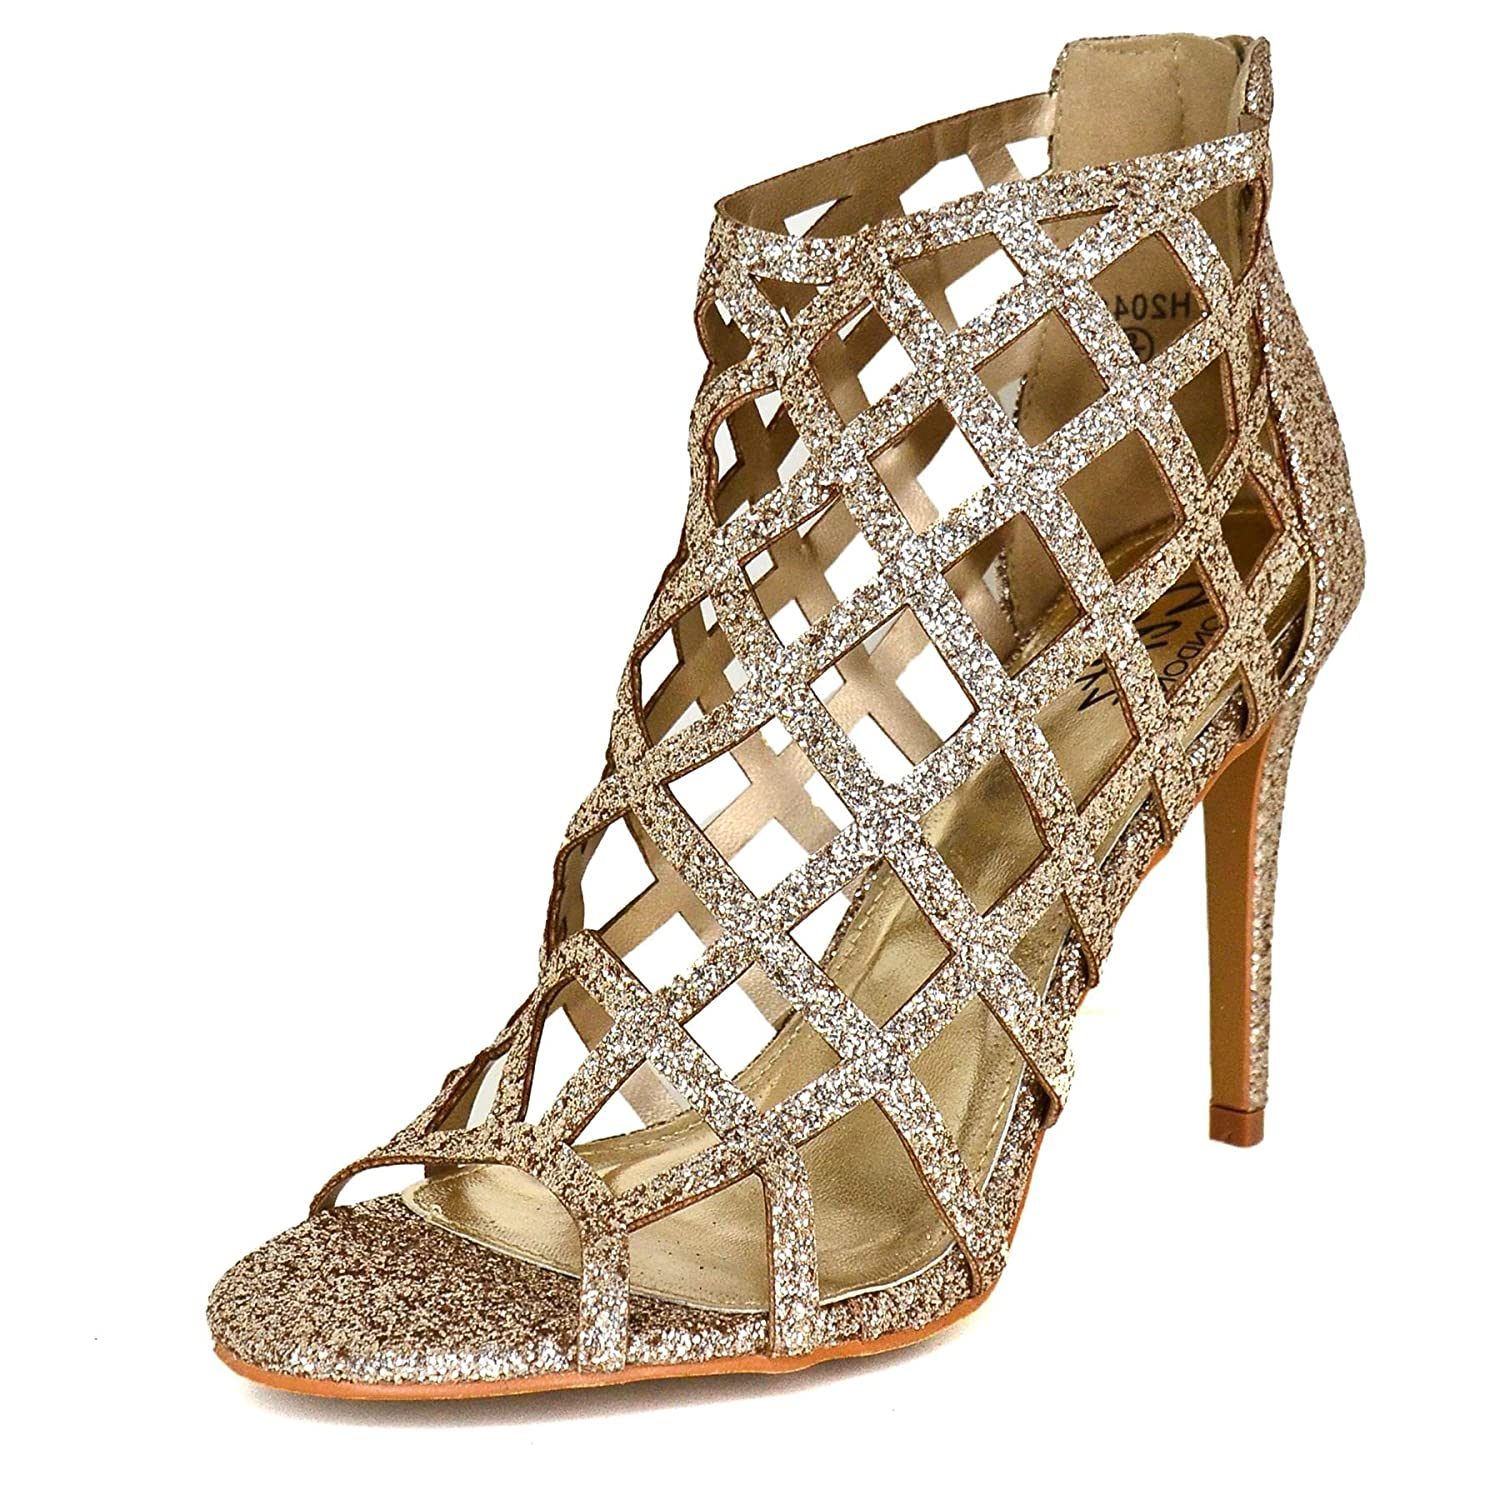 Ladies Metallic Stiletto Christmas Party Shoes Evening Caged Open Toe High Heels